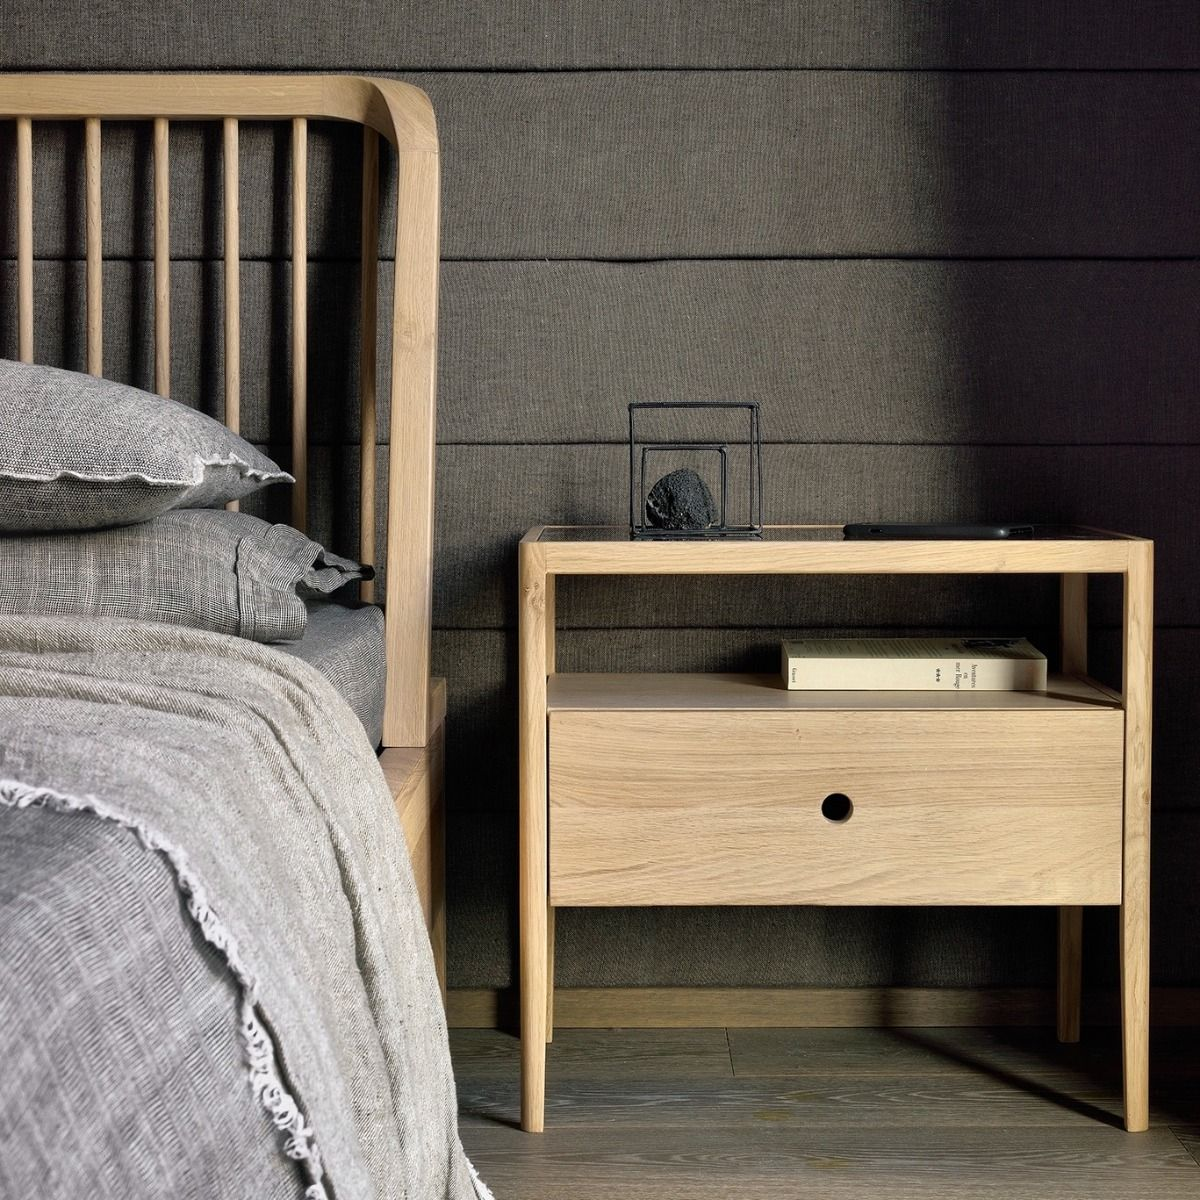 Ethnicraft Oak Spindle Bed with the spindle bedside table